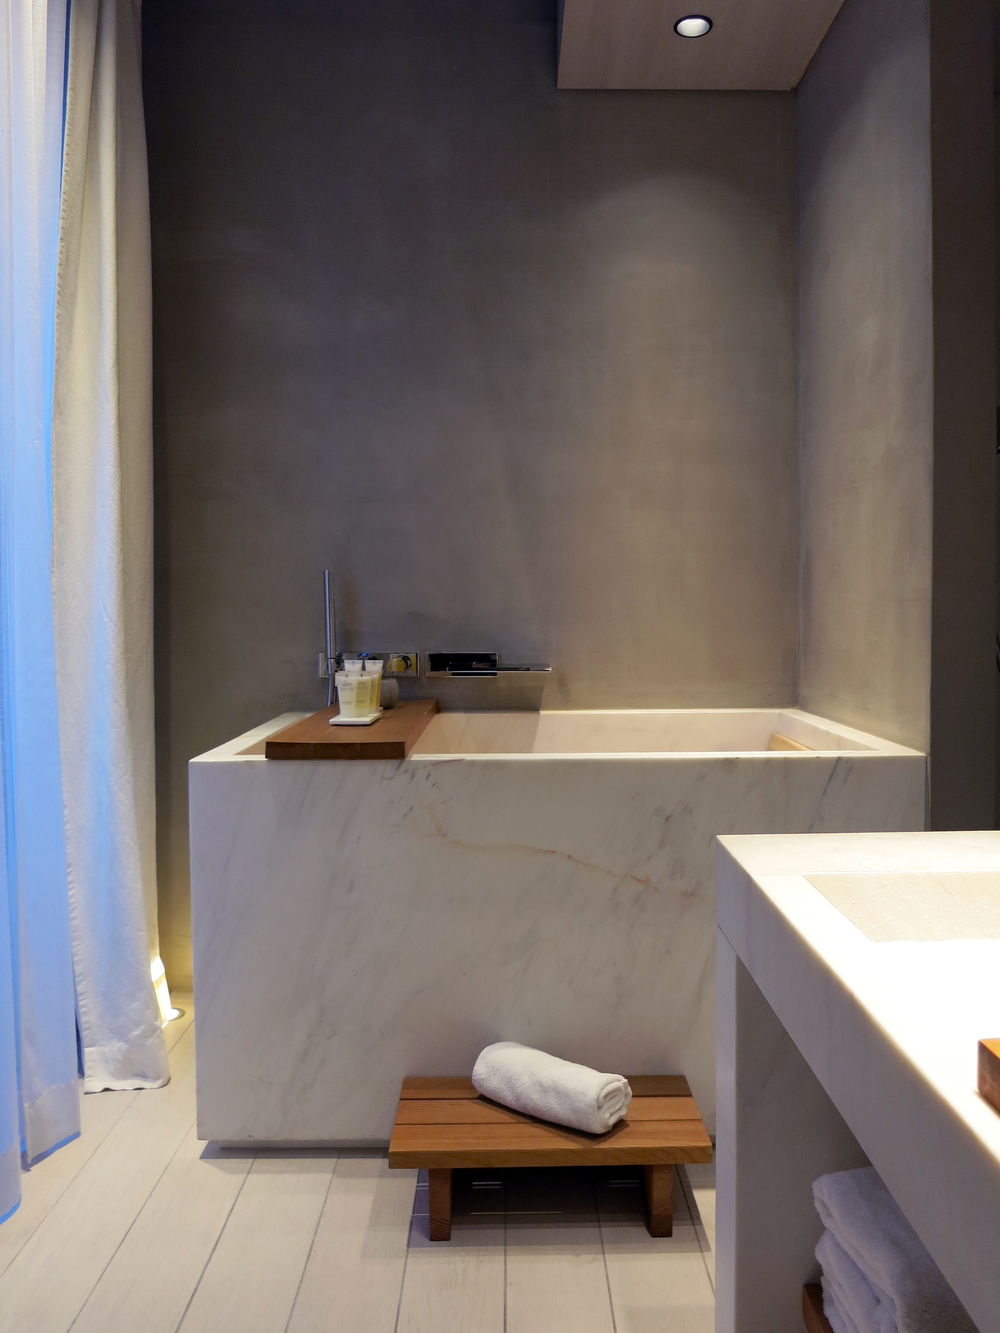 paris-photo-diary-hotel-de-nell-japanese-tub